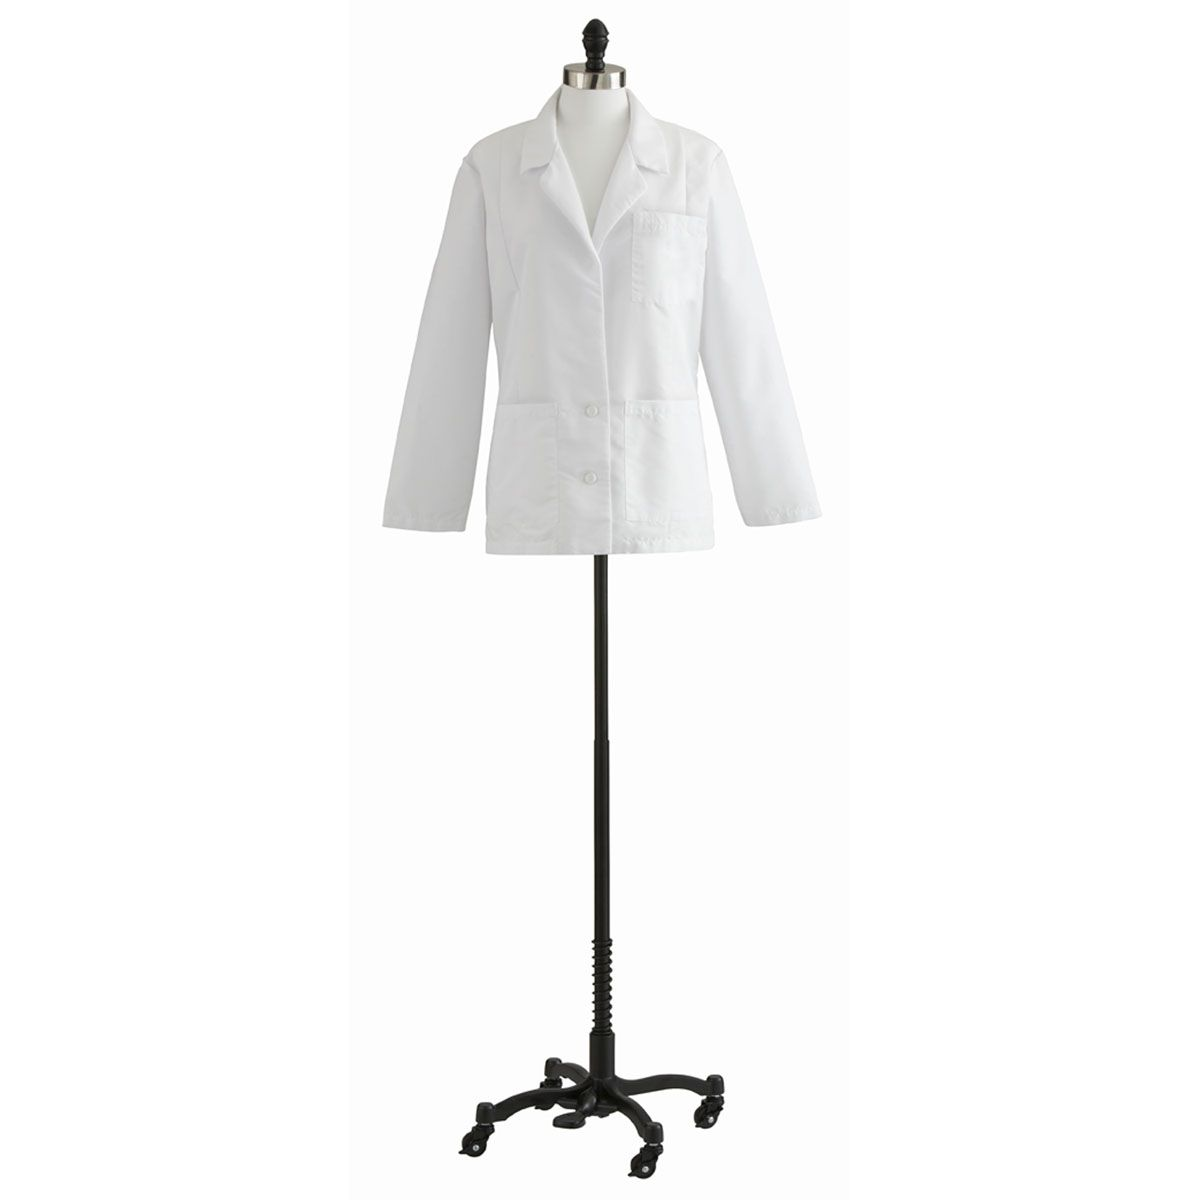 Medline Ladies Consultation Coat - White, 26, Each - Model 88018QHW26